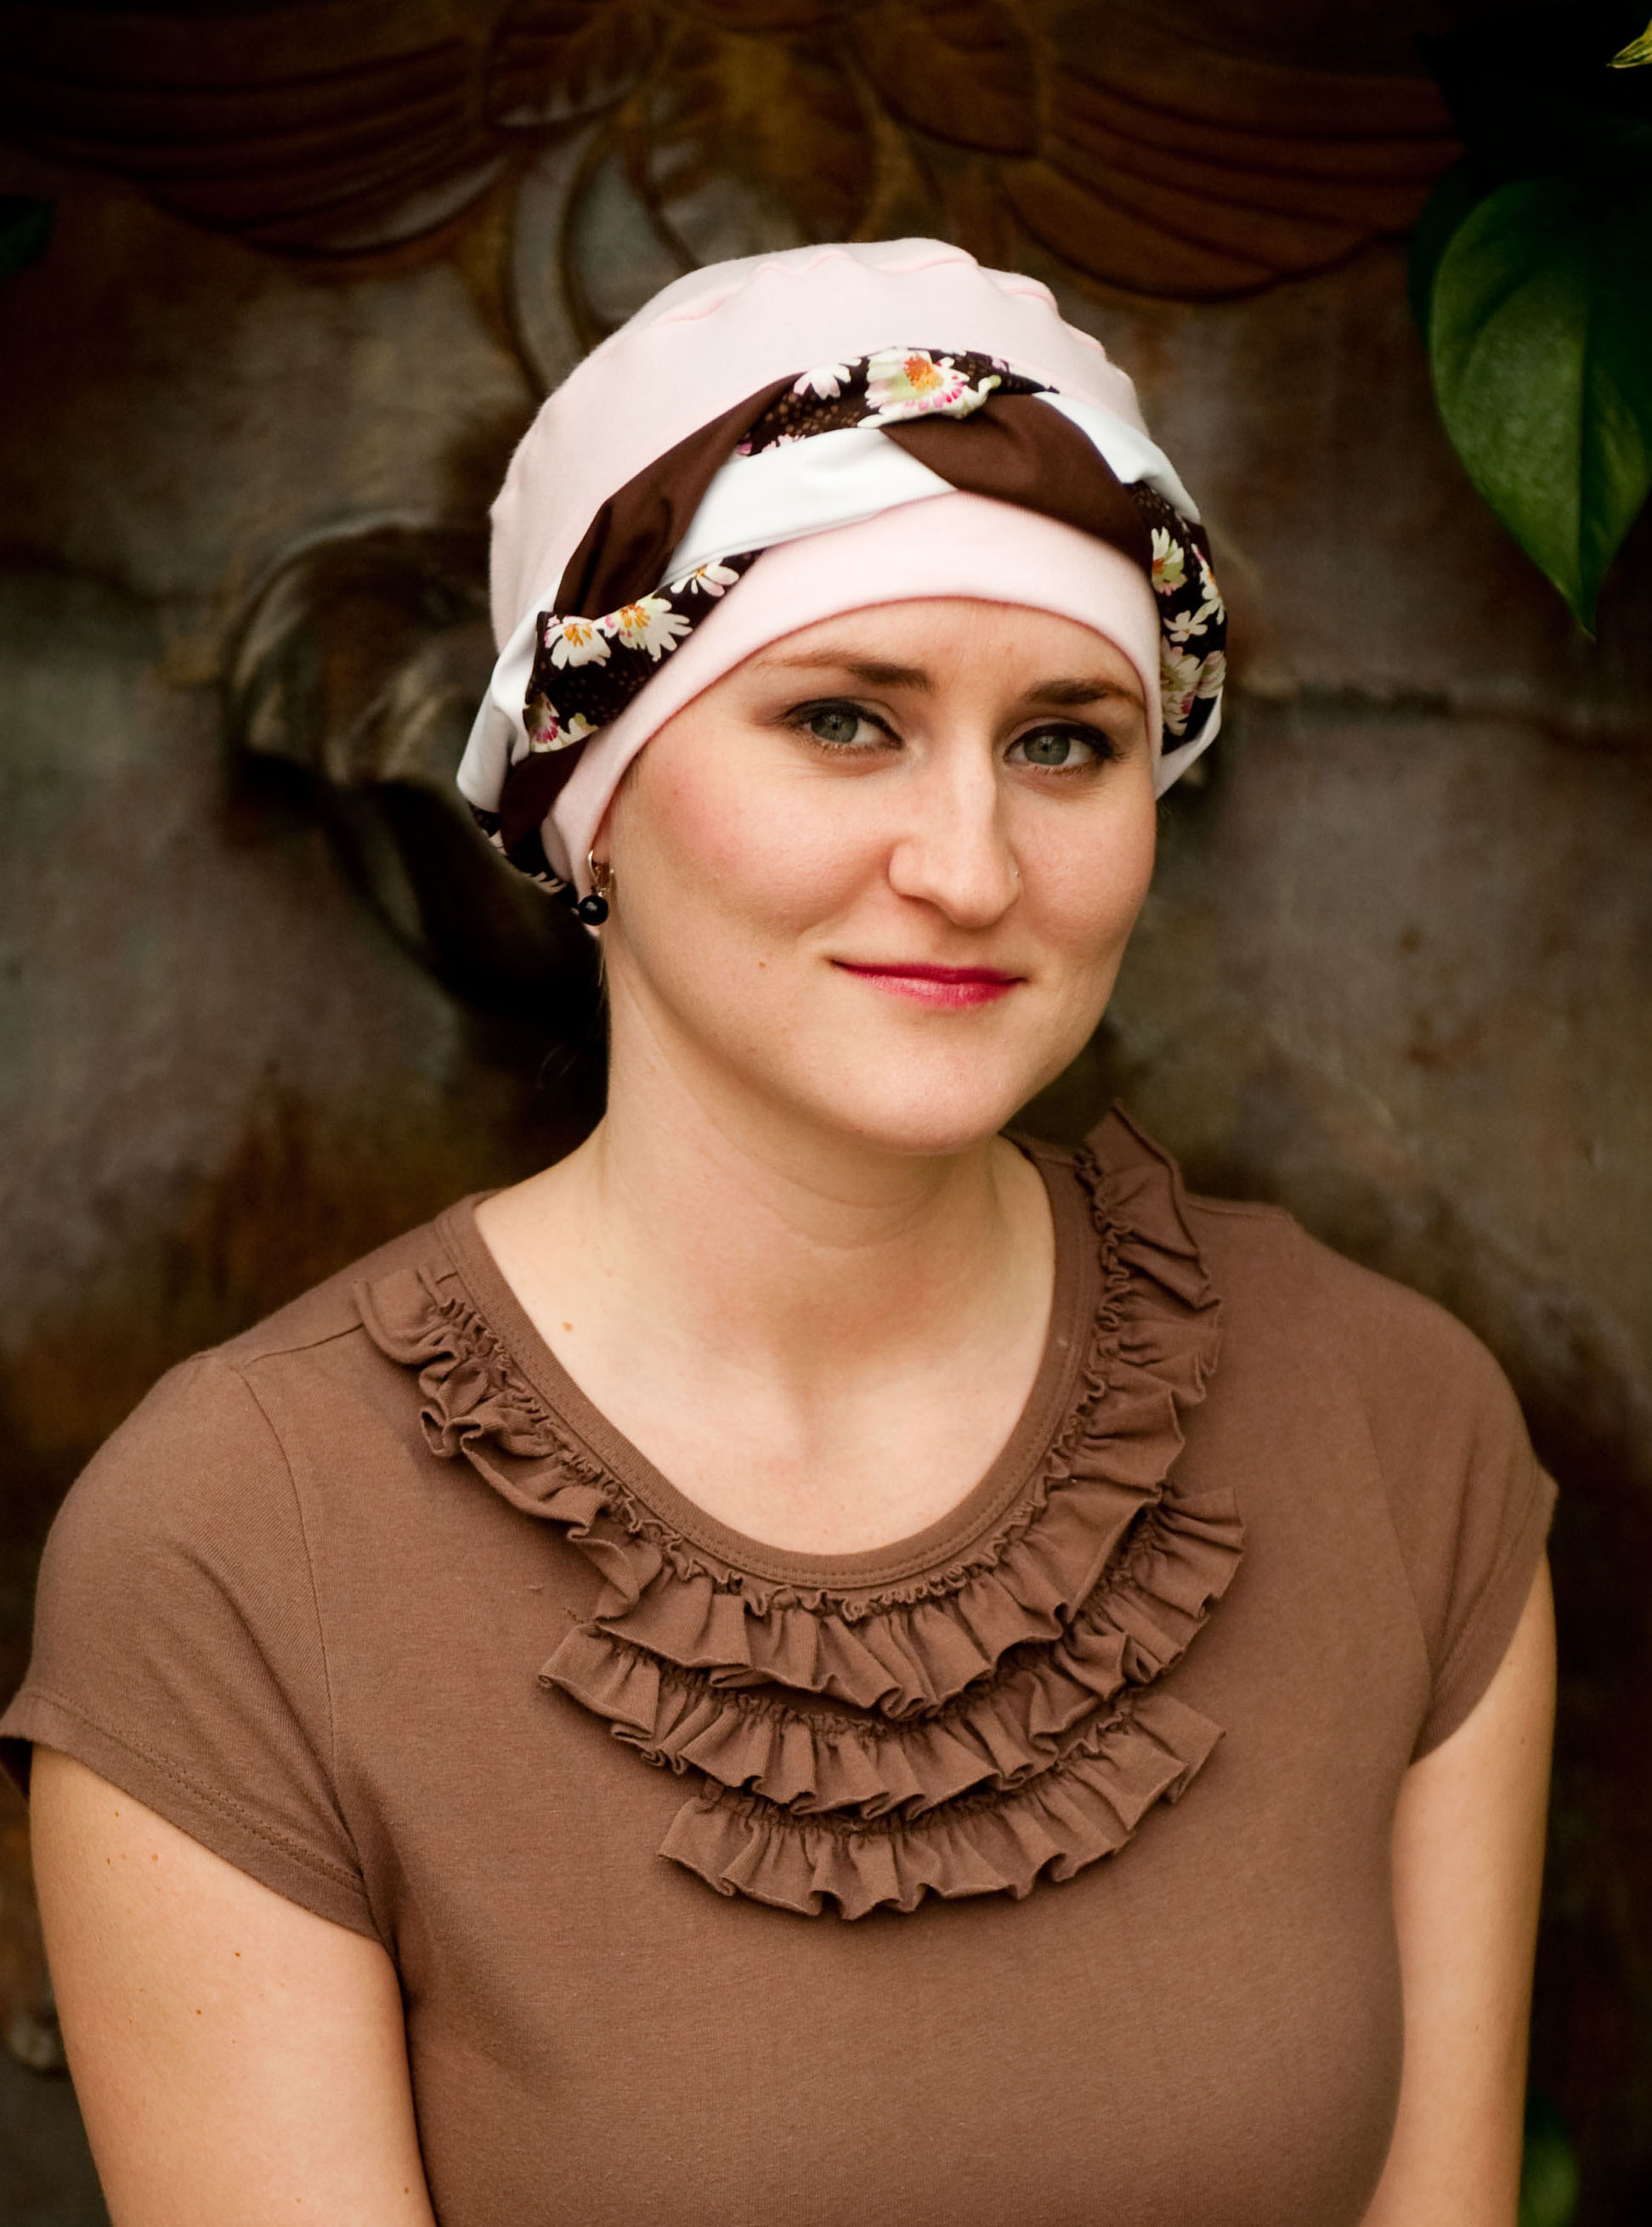 Find the best selection of cheap sports braided headband in bulk here at grounwhijwgg.cf Including silver braided headbands and braided headbands for women at wholesale prices from sports braided headband manufacturers. Source discount and high quality products in hundreds of categories wholesale direct from China.